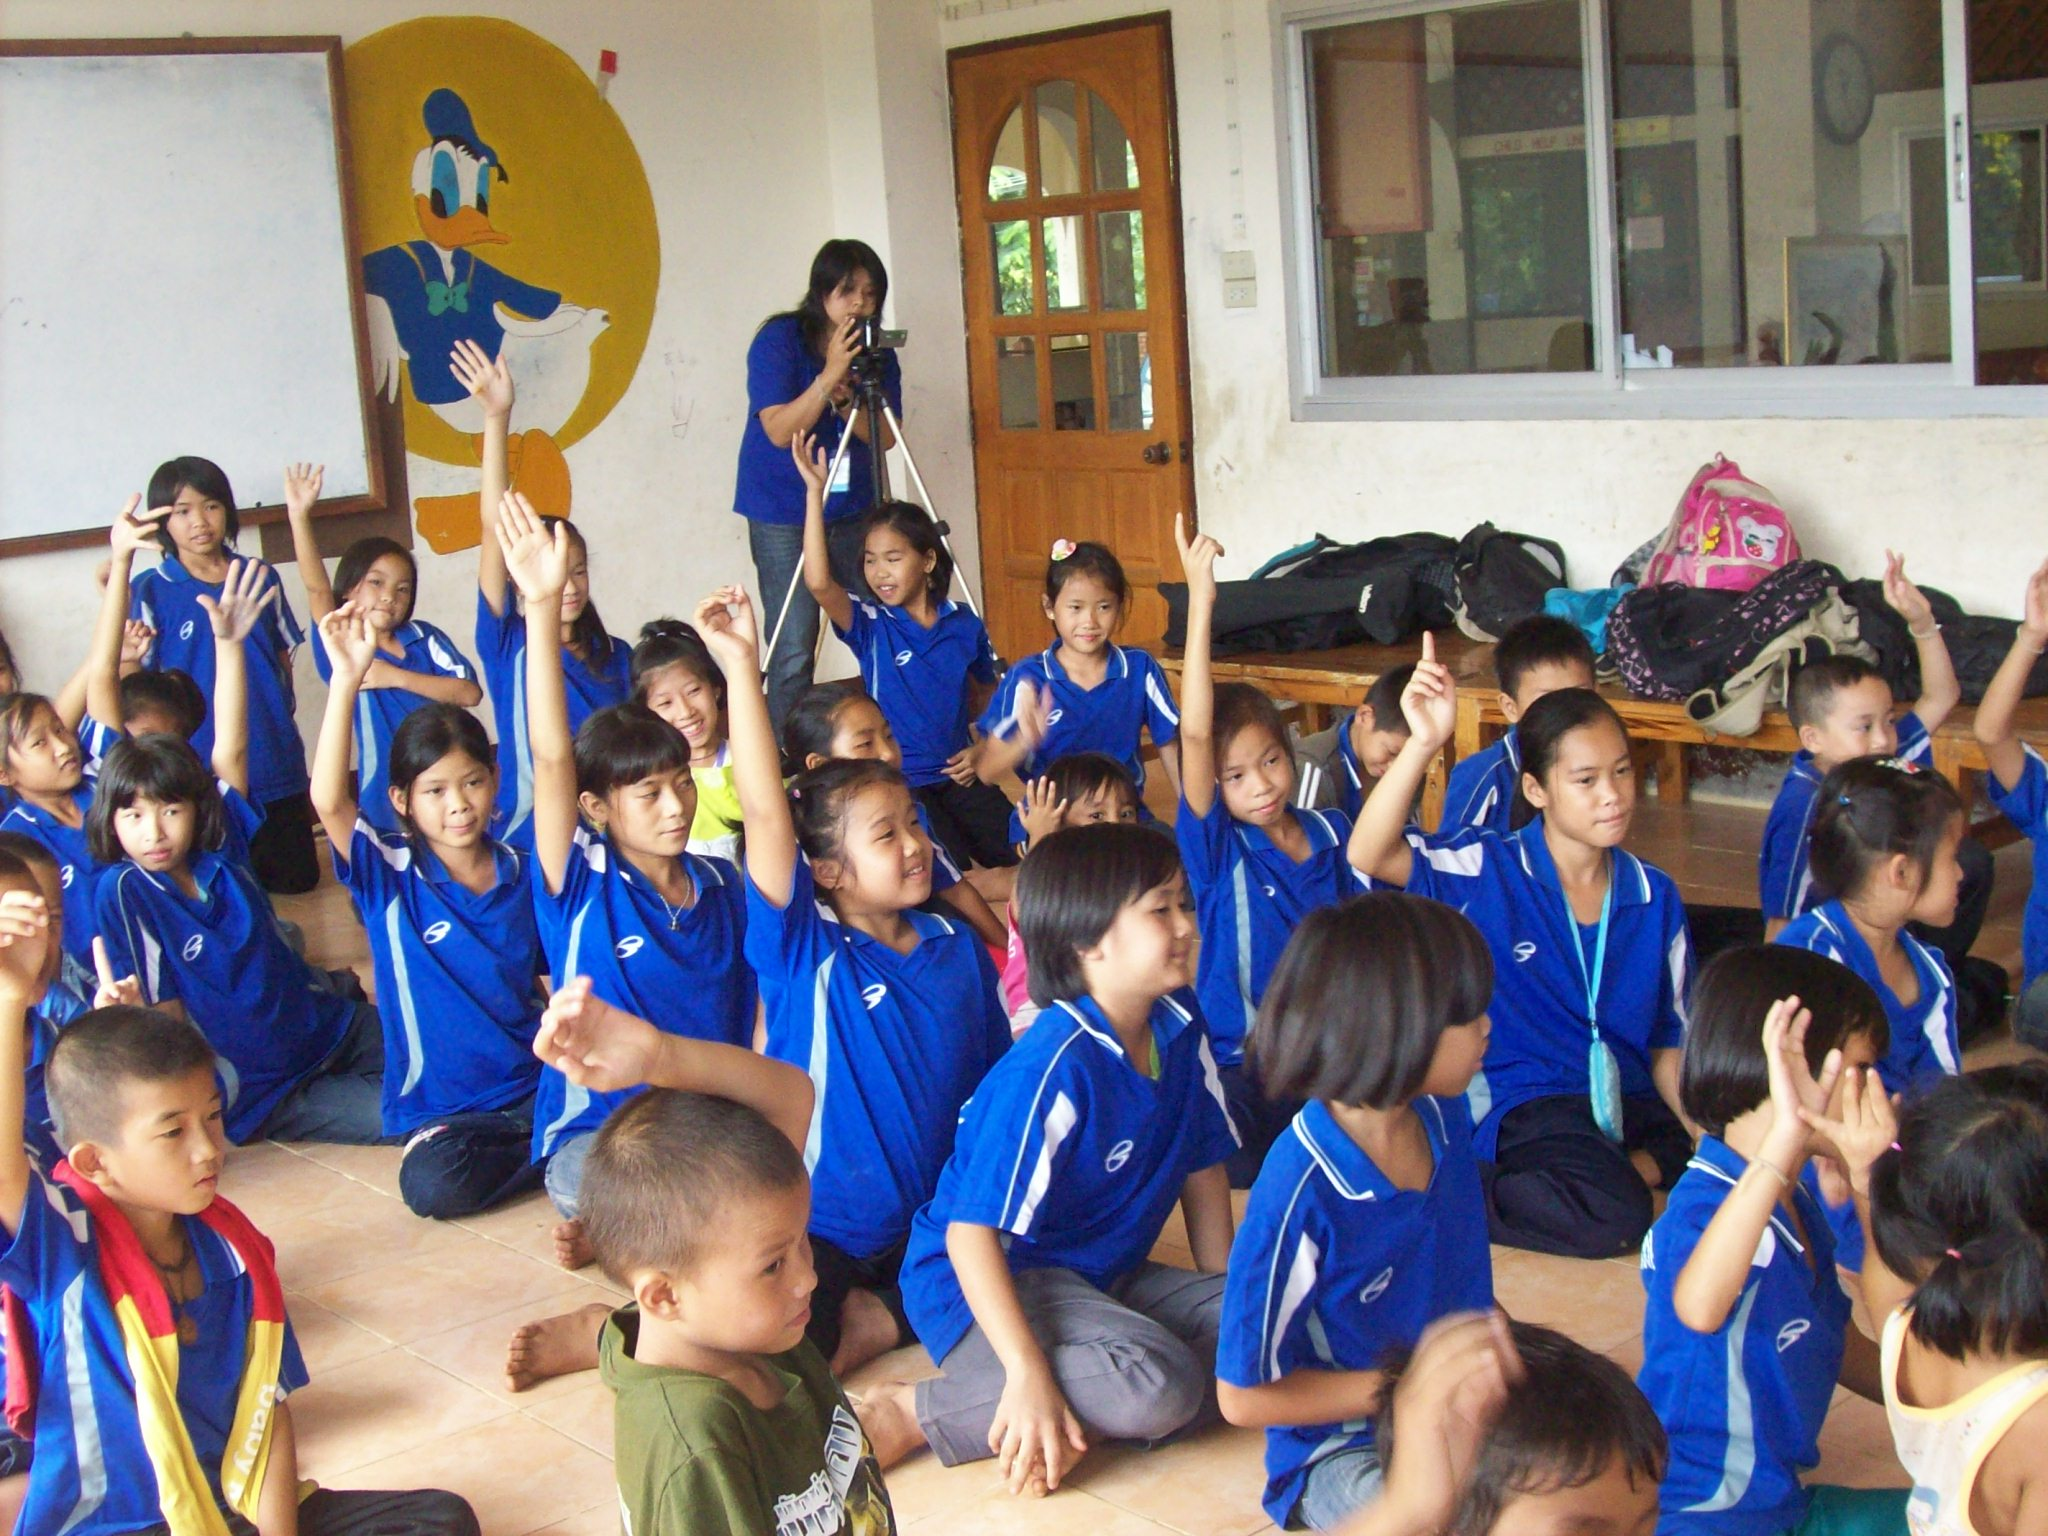 childrens participation The nature of children and young people's participation in decision-making varies depending on the degree of autonomy held by children and young people in the decision-making process and the roles played by adults.